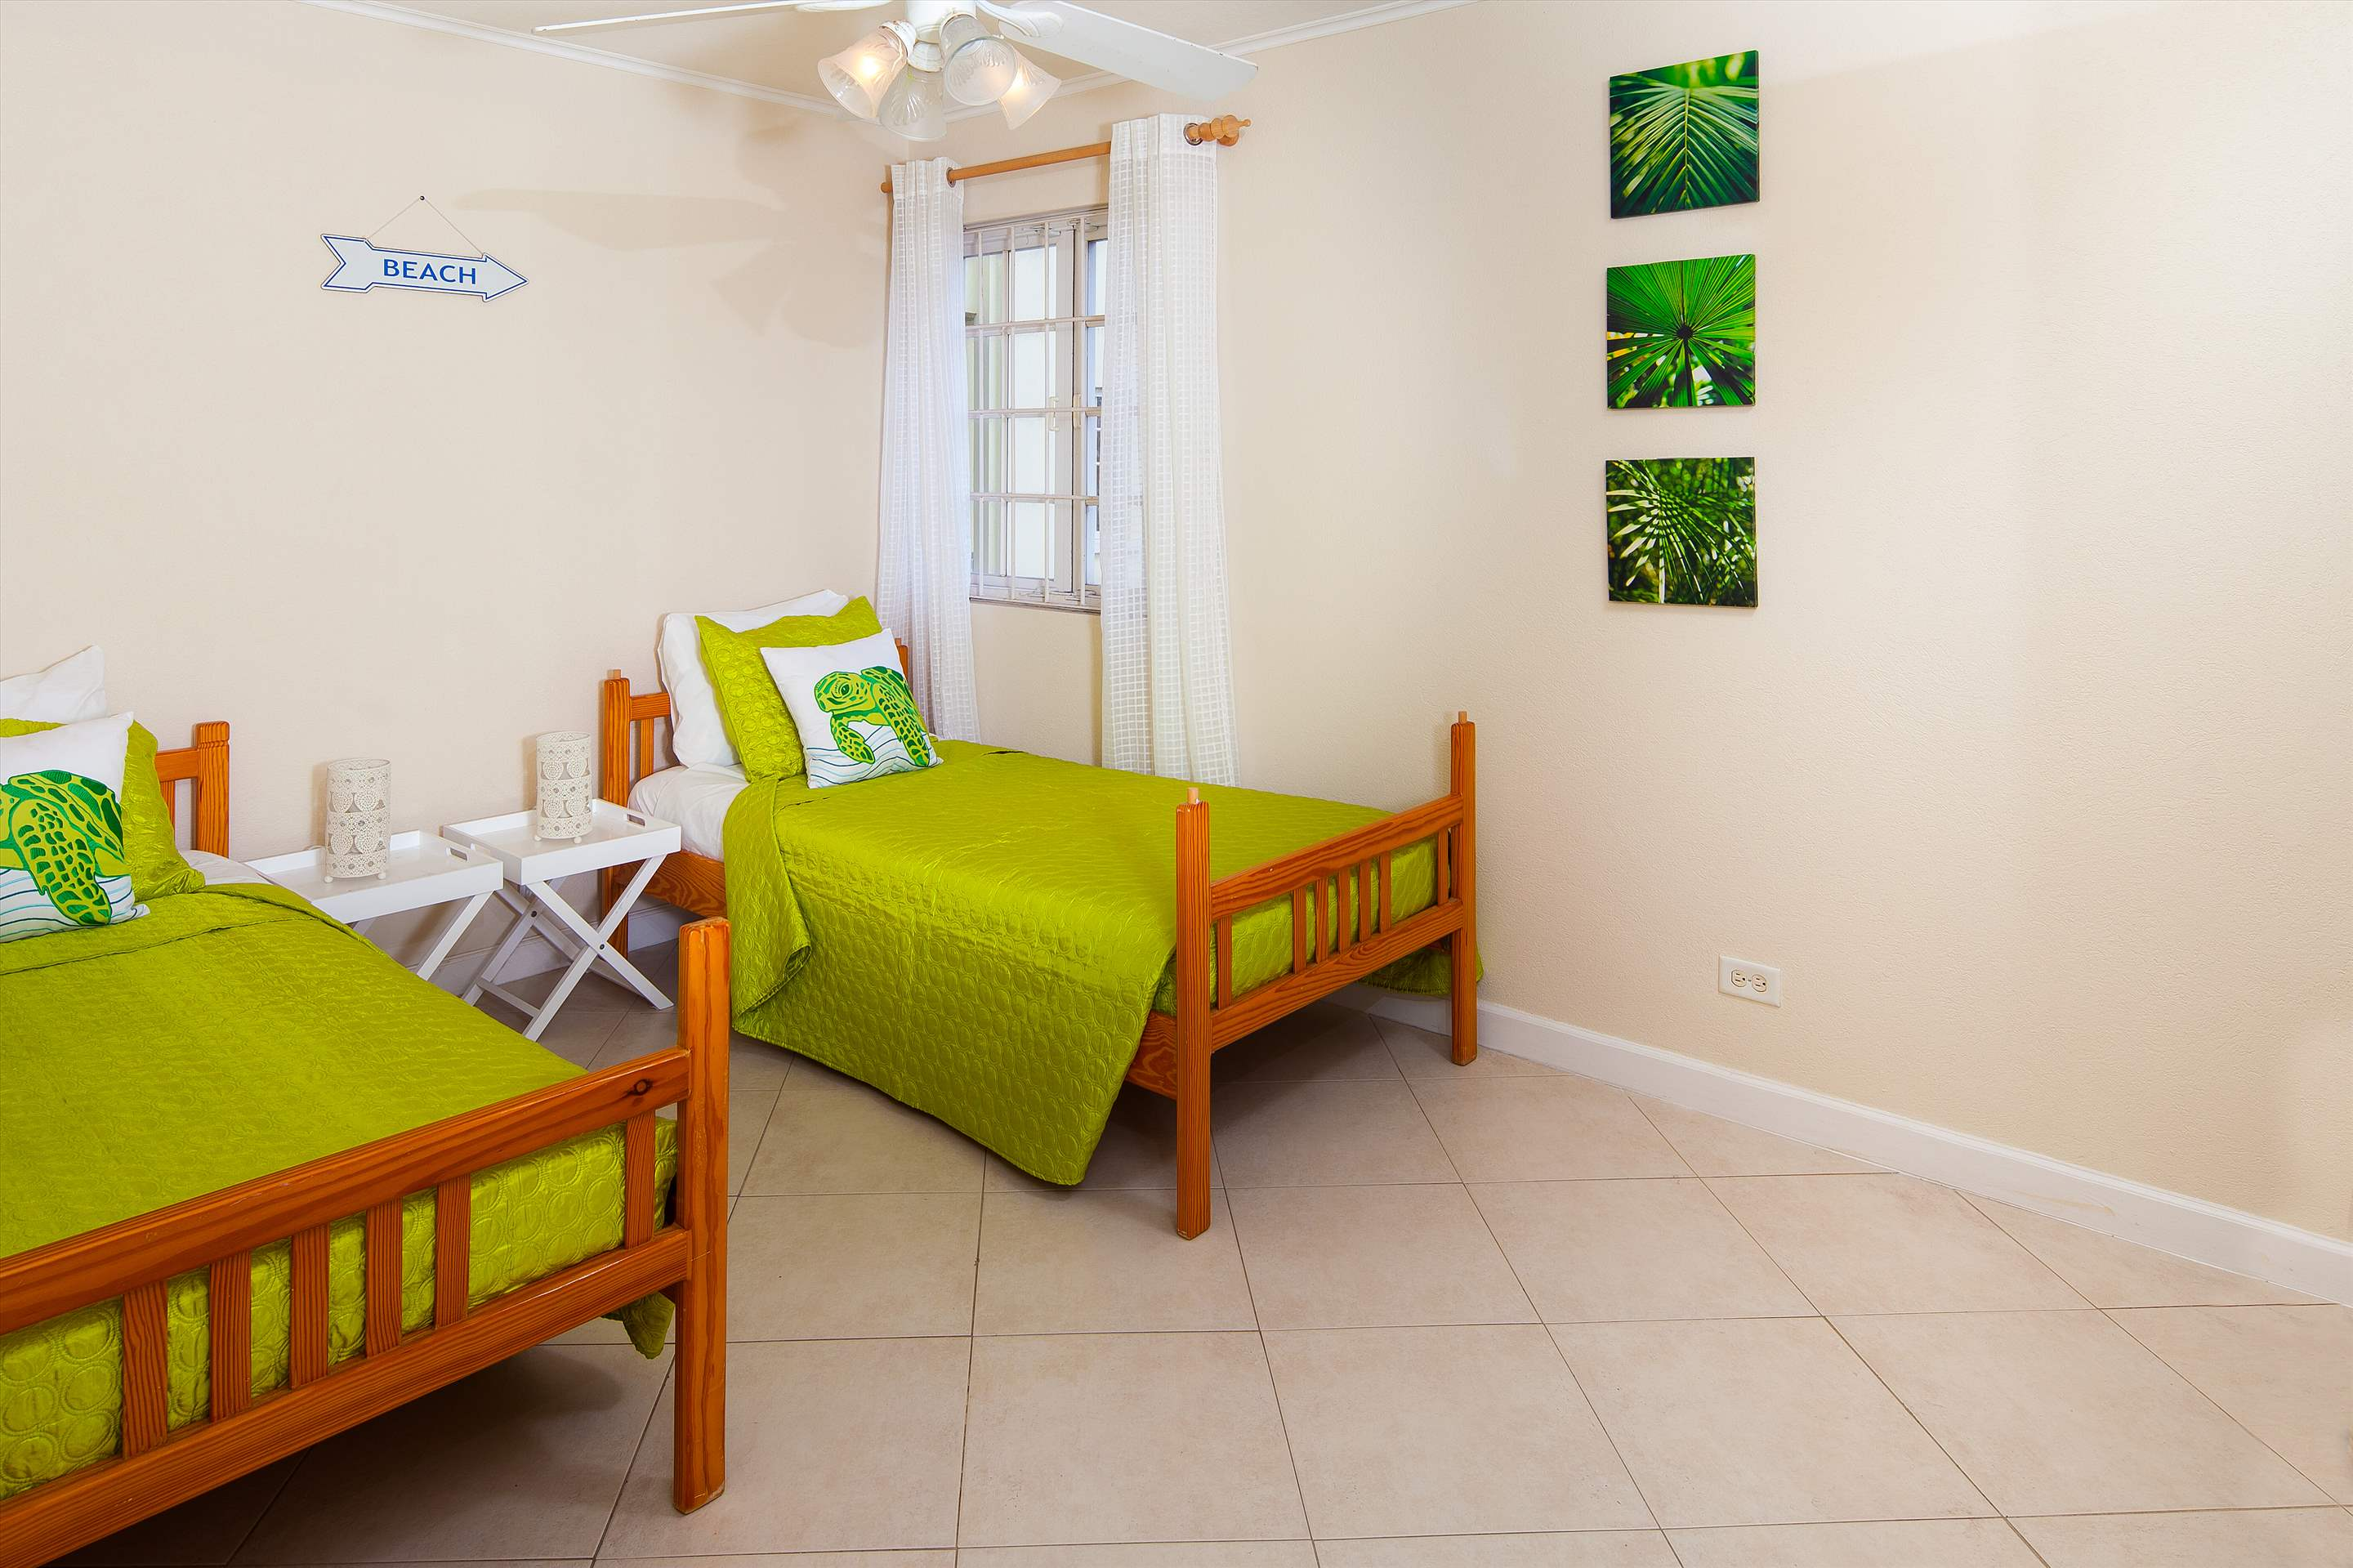 Margate Gardens 4, 2 bedroom, 2 bedroom apartment in St. Lawrence Gap & South Coast, Barbados Photo #10